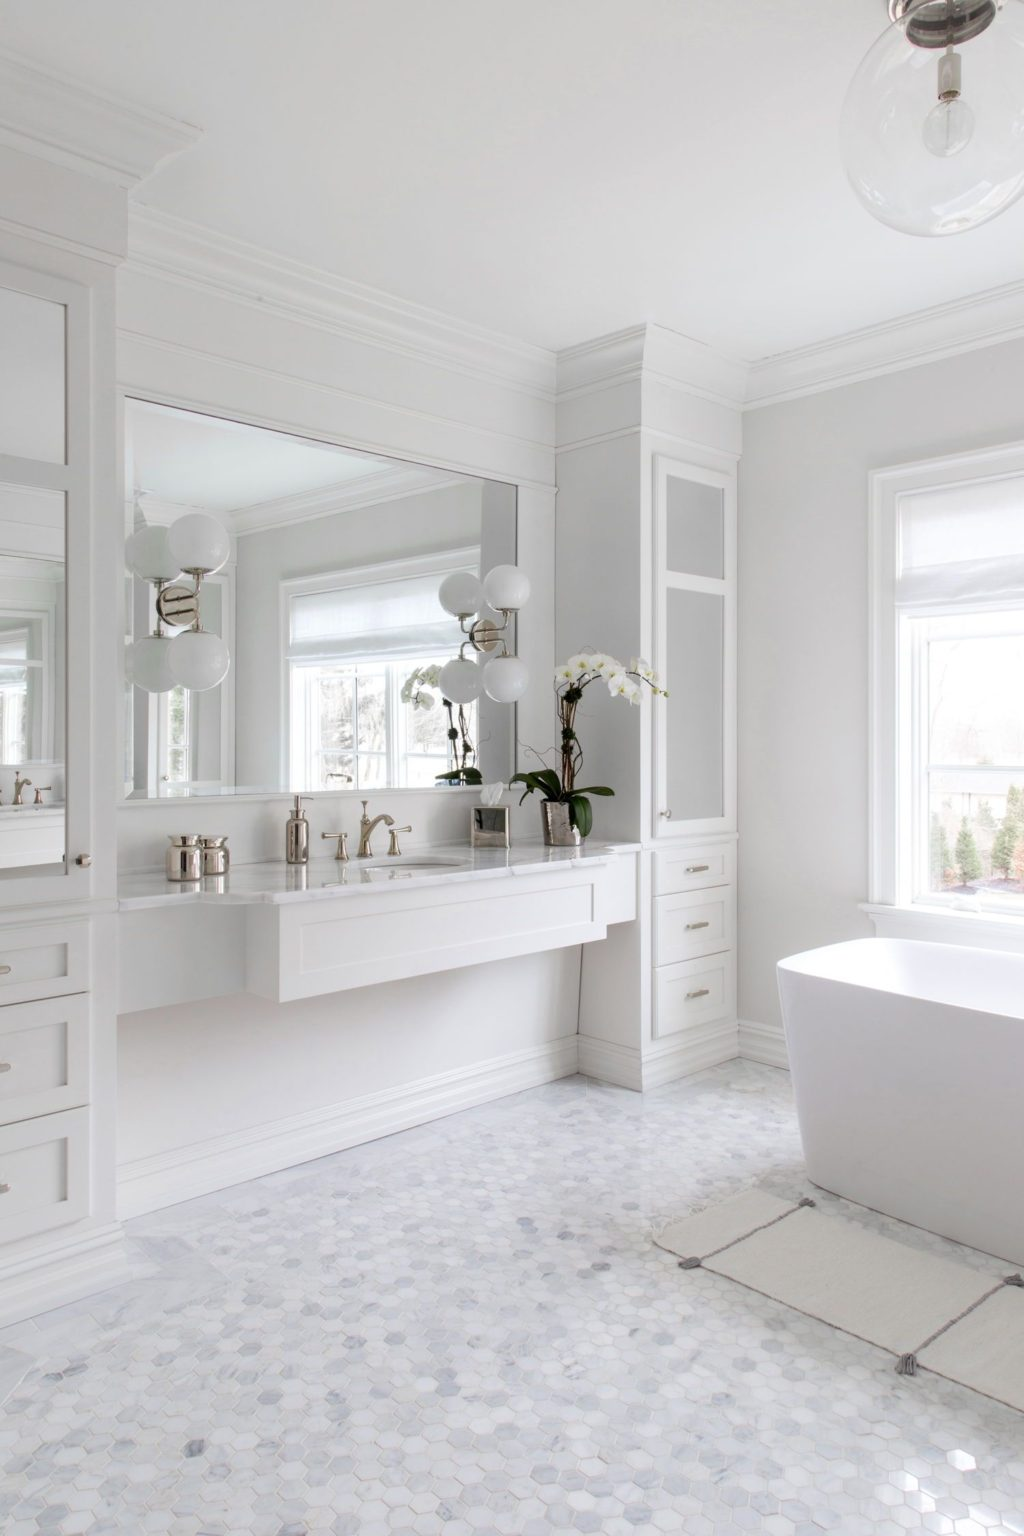 All-whites-design.-1024x1536 Top 10 Outdated Bathroom Design Trends to Avoid in 2021